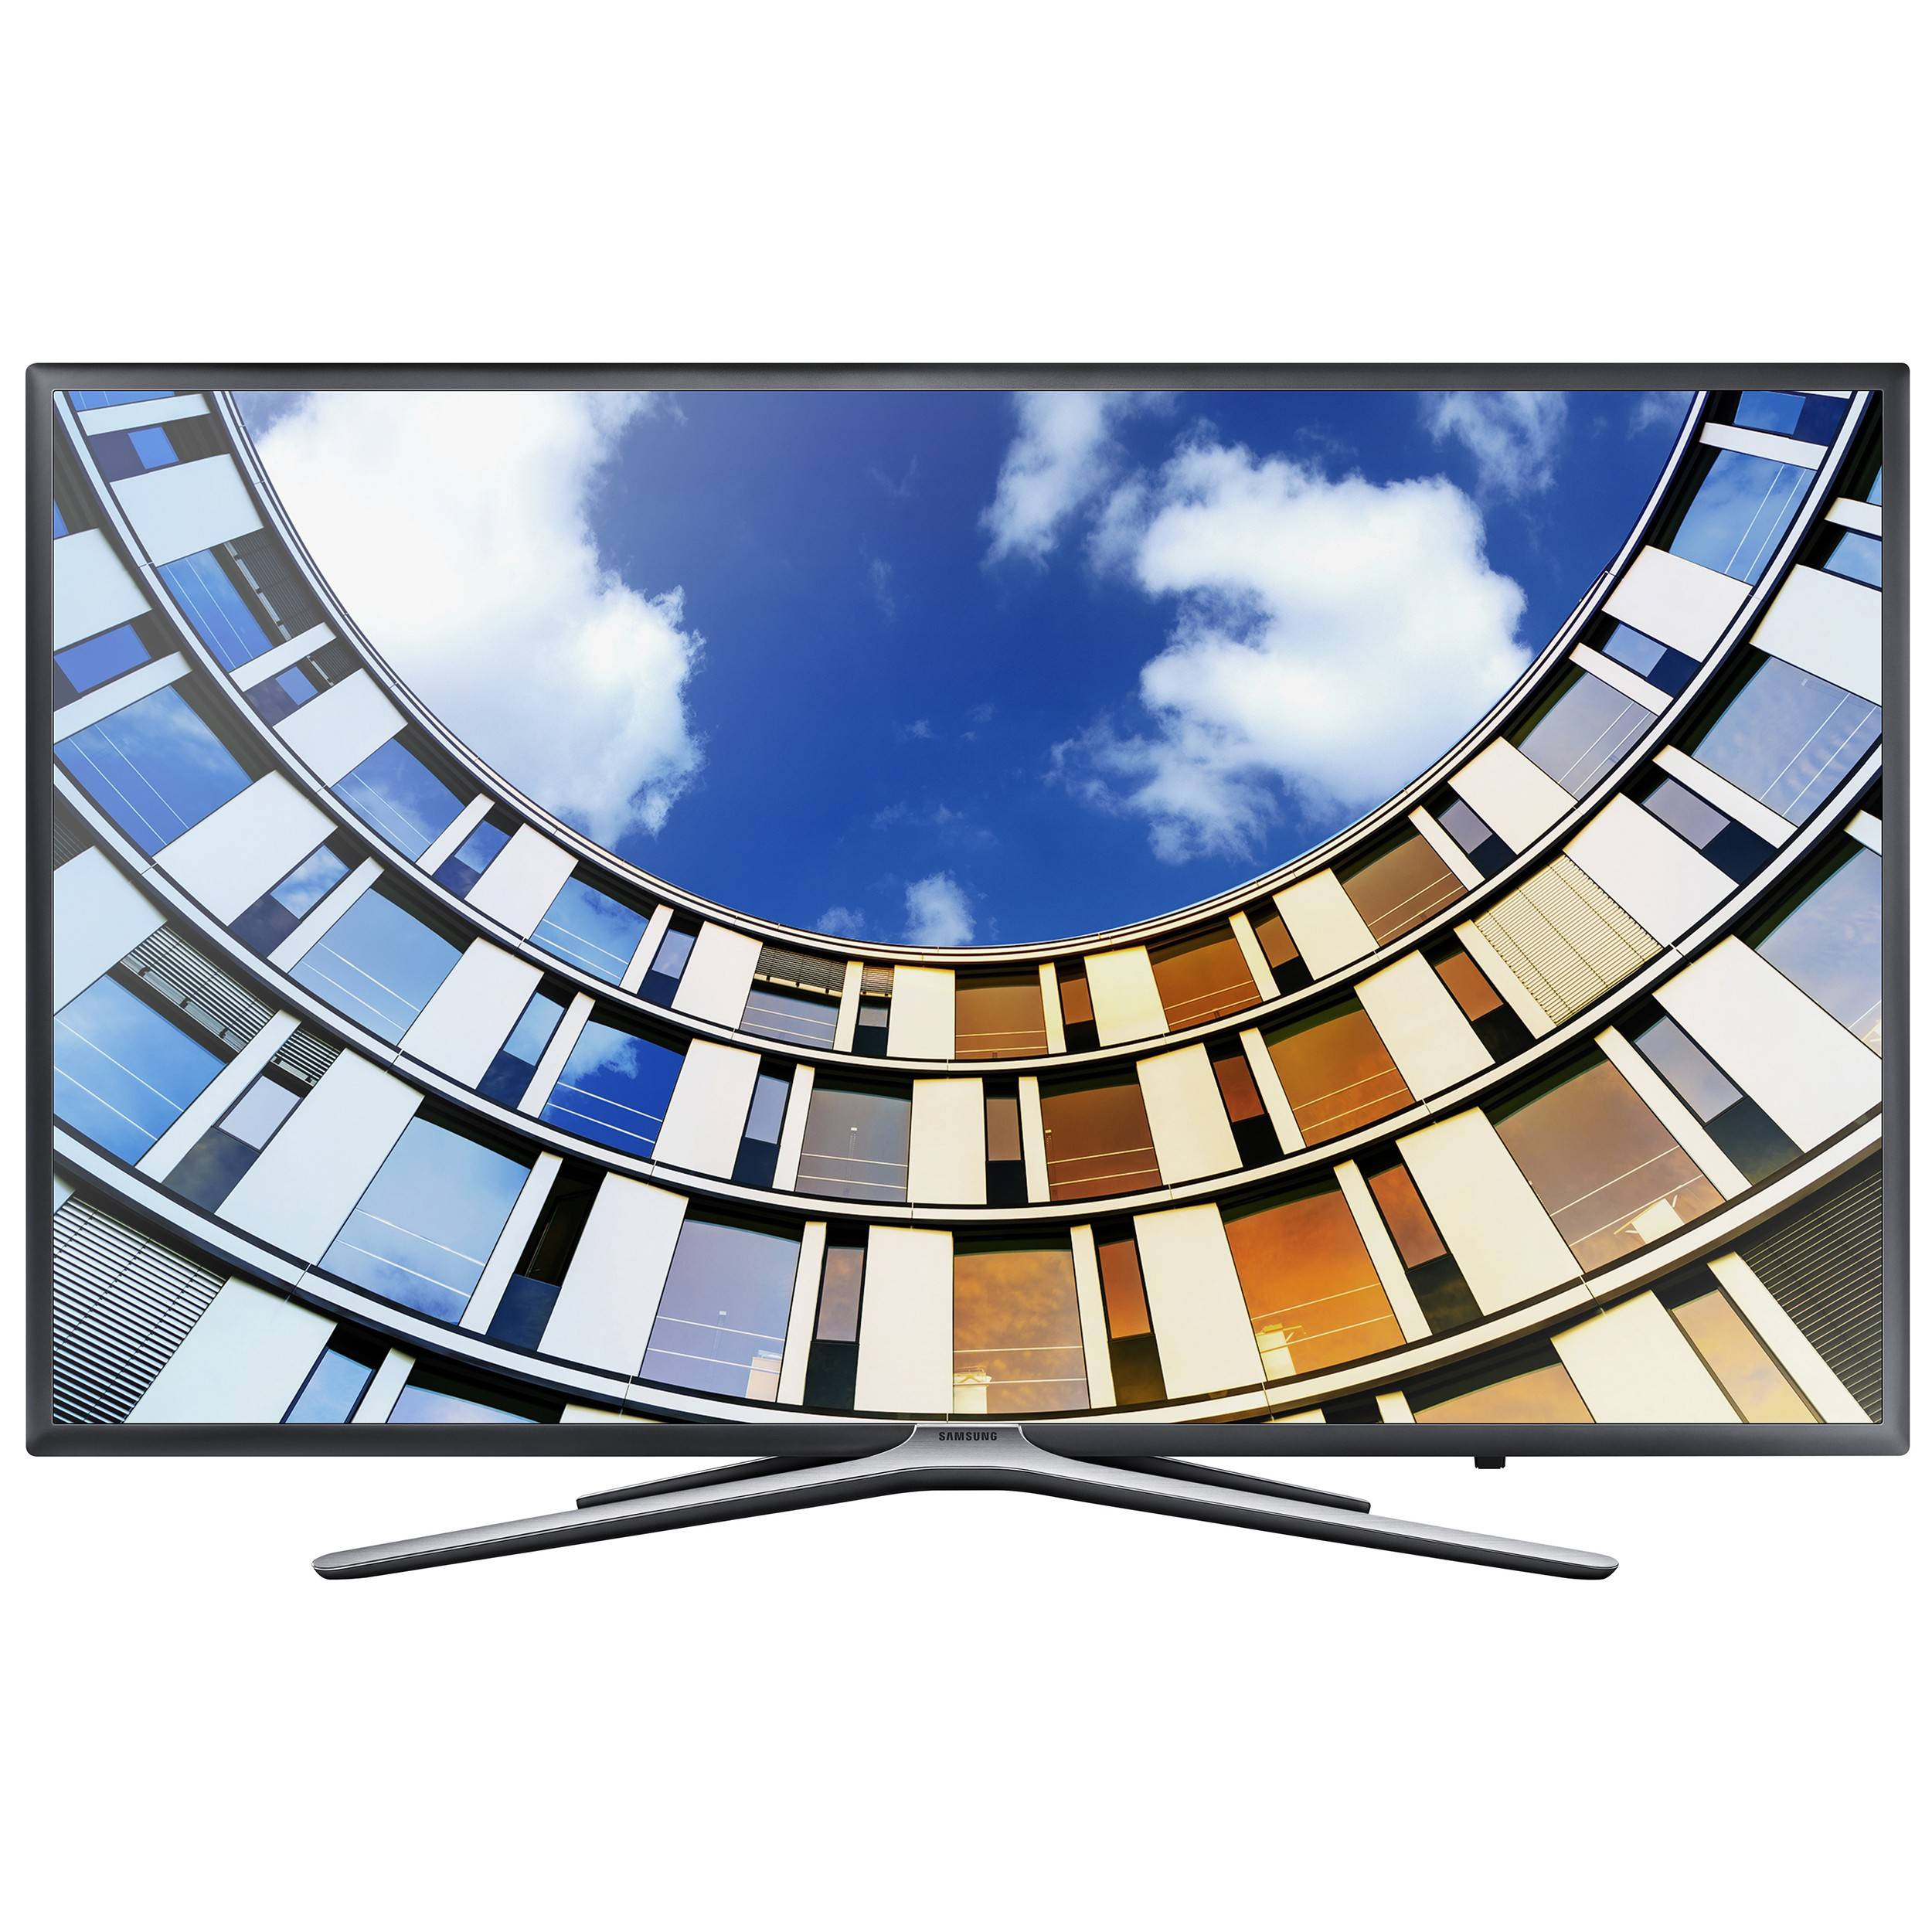 "Samsung 32"" Full HD Smart TV UE32M5505 (tumma titaani)"